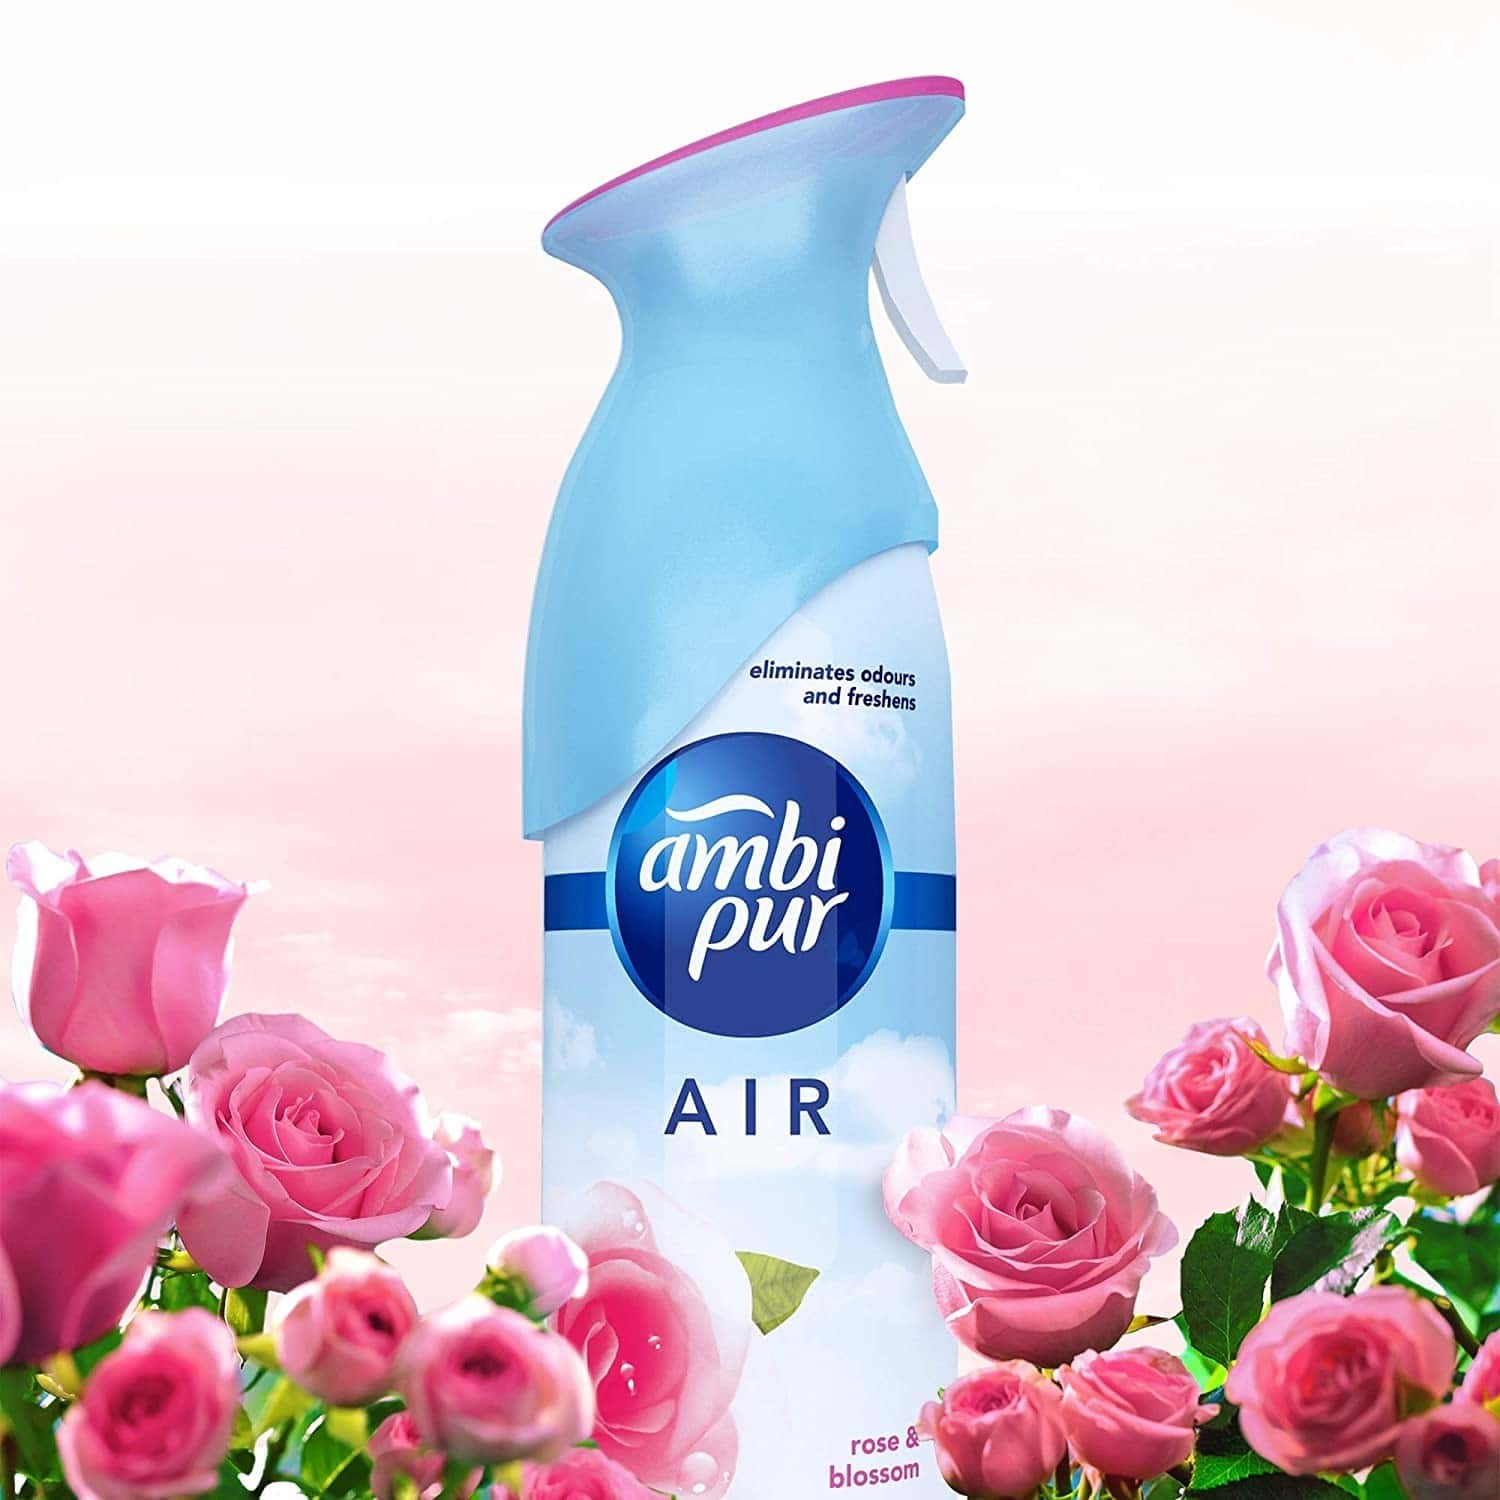 Ambi Pur Air Effect Rose And Blossom Air Freshener - 275g